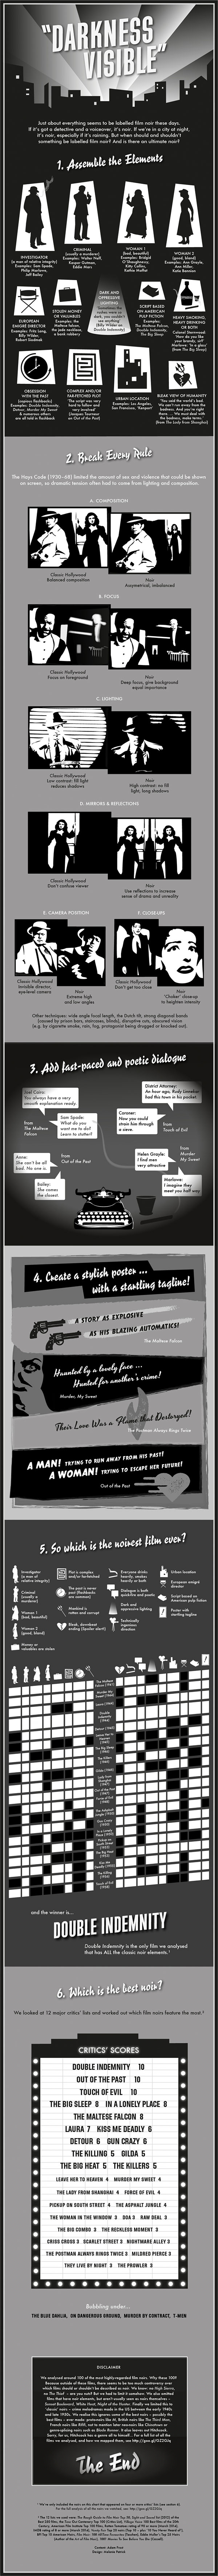 bfi-film-noir-infographic-full